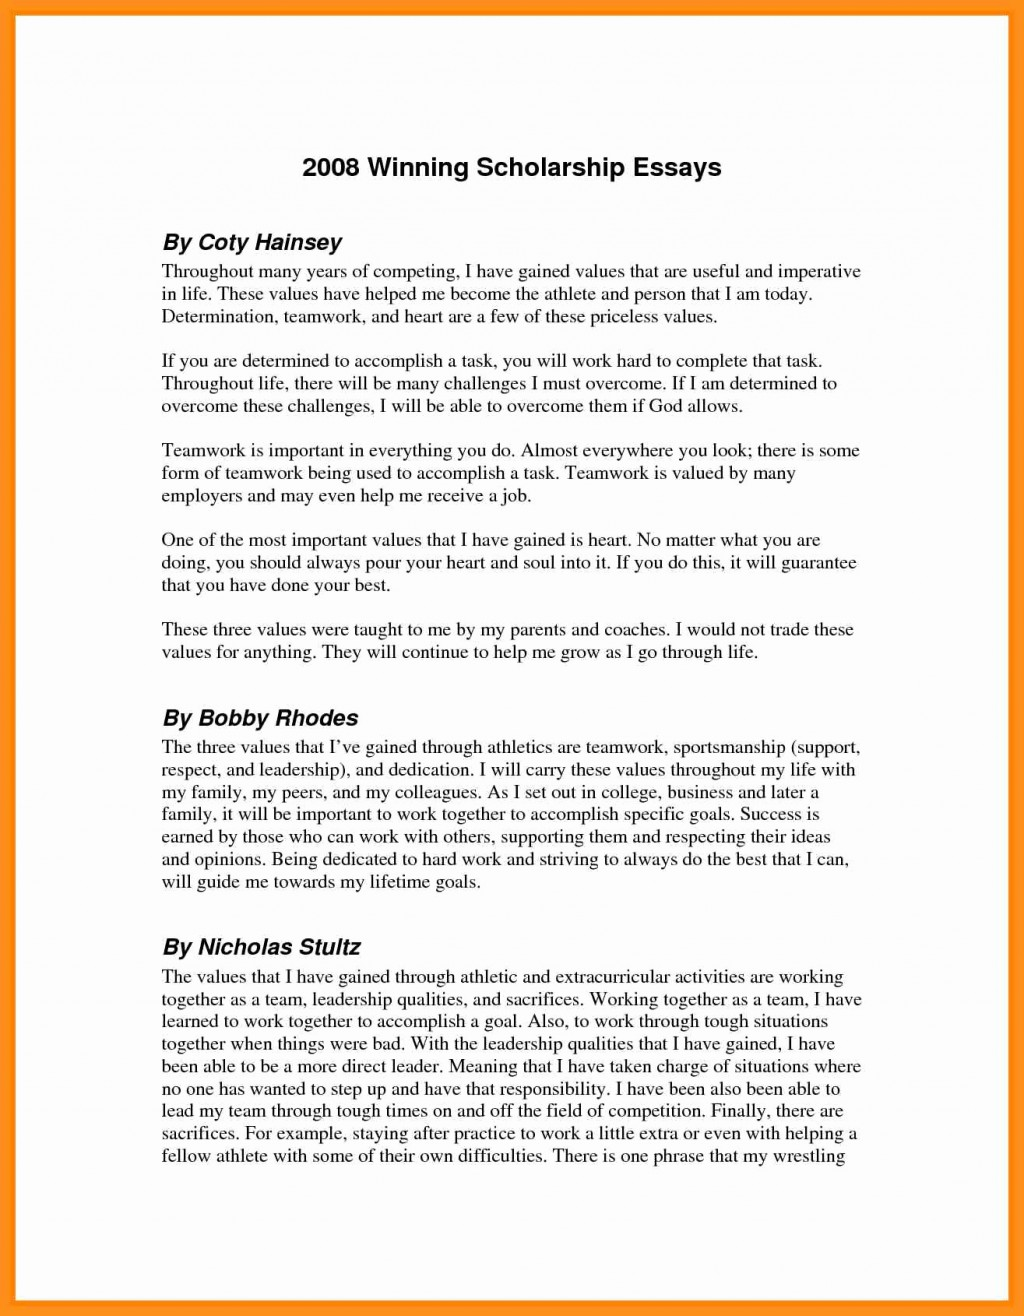 008 Why I Deserve This Scholarshipssayxamples Of Winning Resume Financi Pdf Career Goals Nursing About Yourself Financial Need Words Do You Single Mother Top Scholarship Essay How To Write Sample Large